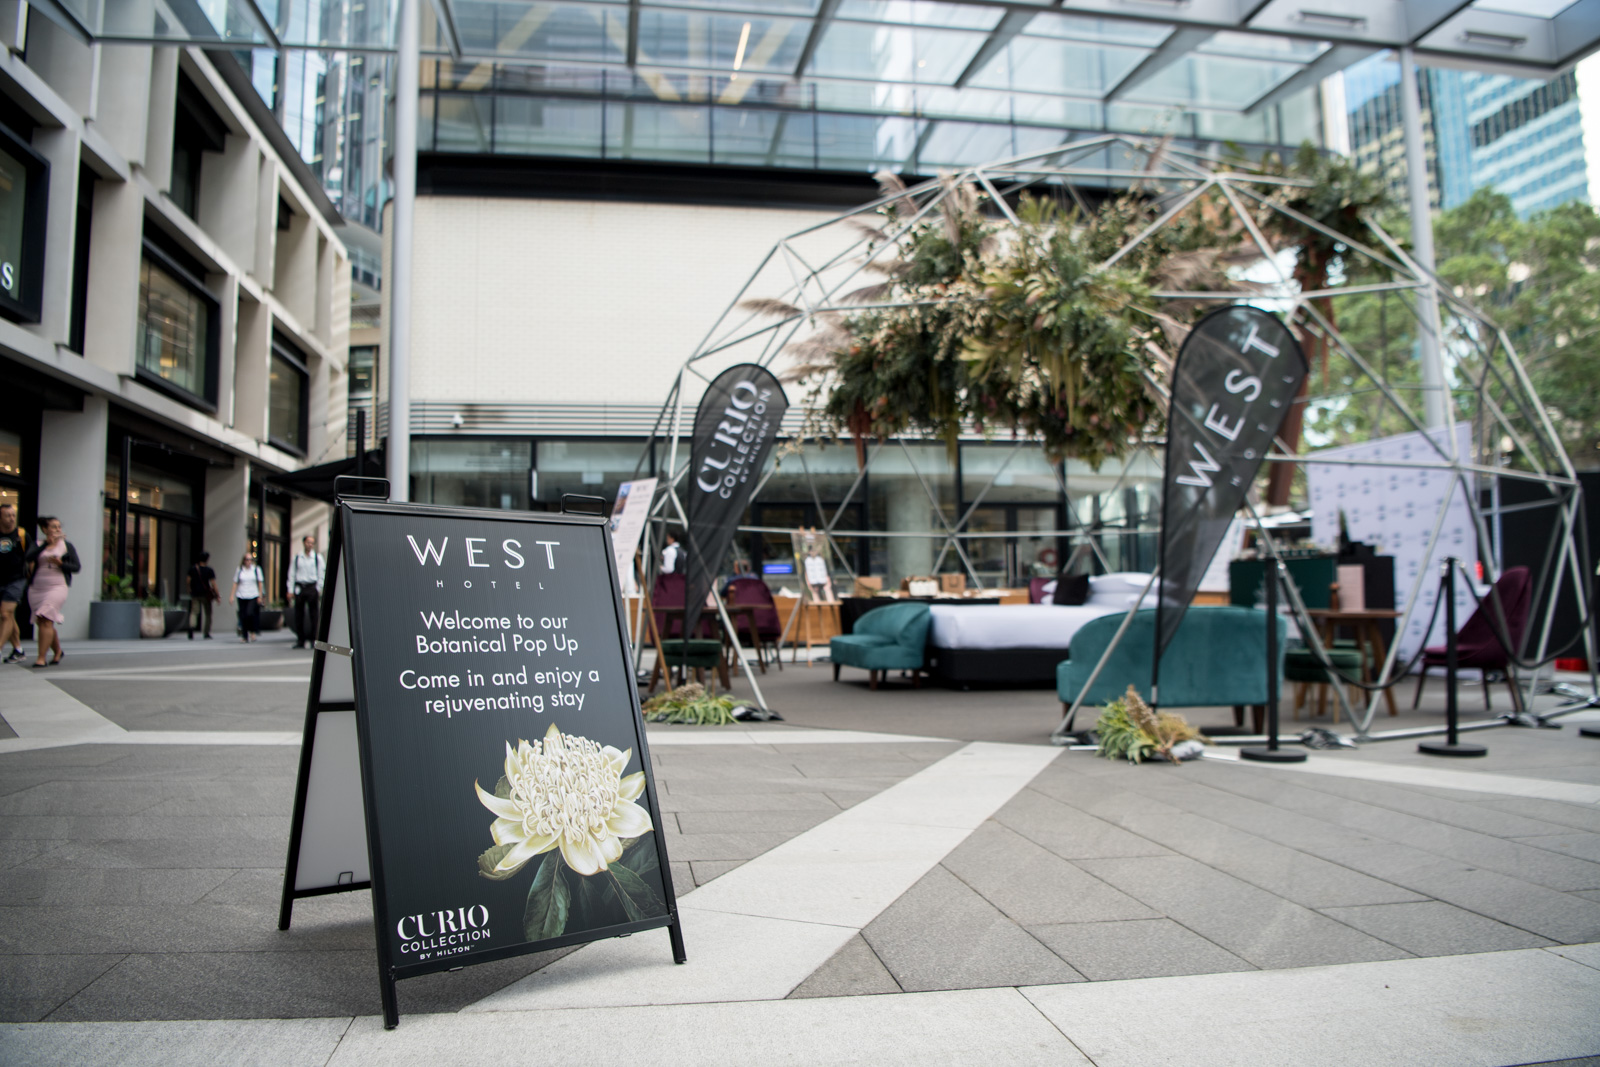 West Hotel Pop Up